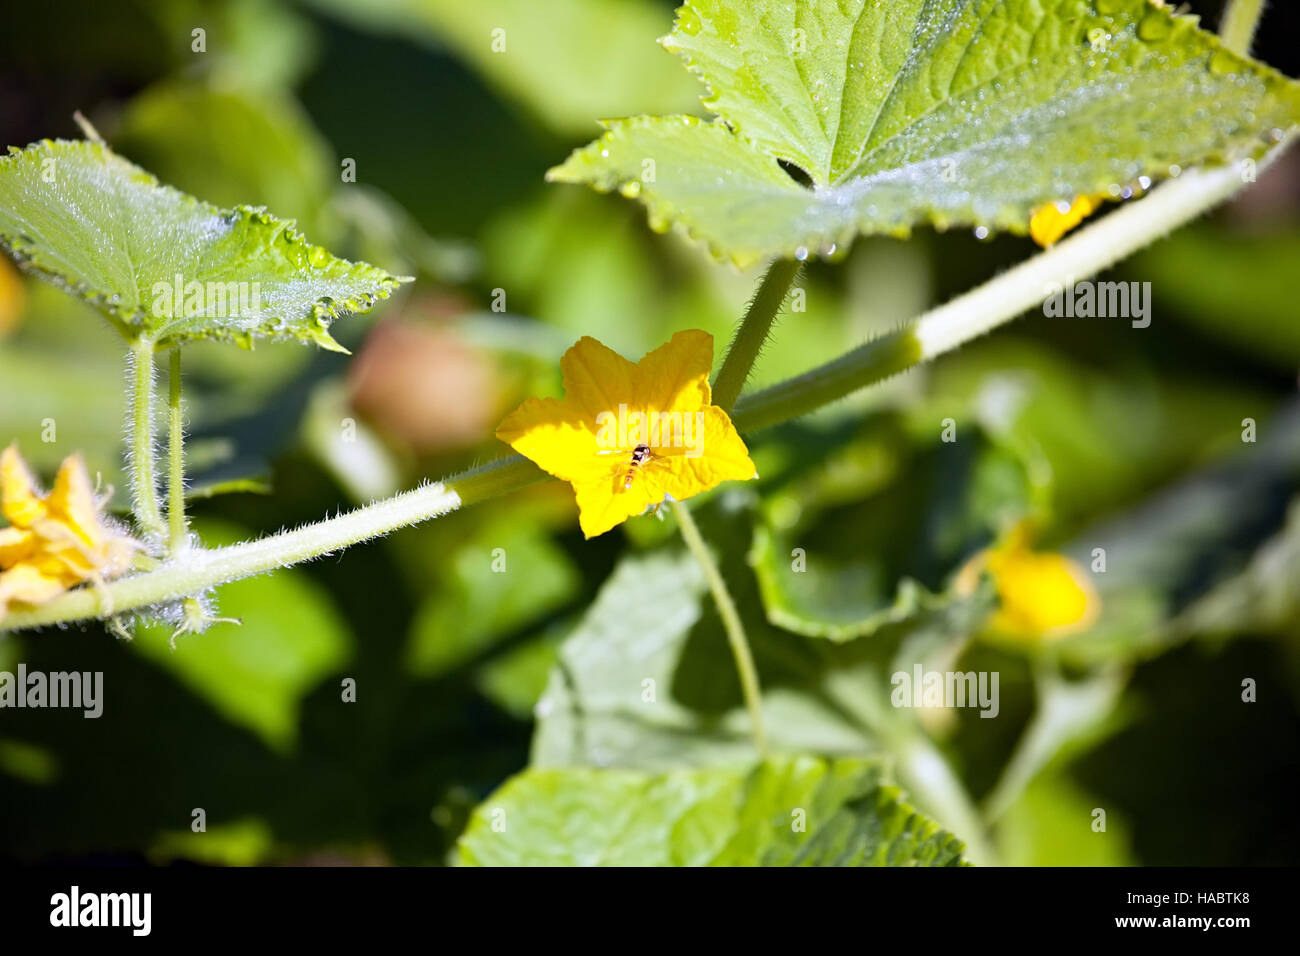 Small flower big leaves stock photos small flower big leaves stock small yellow cucumber flower on big green leaves background stock image mightylinksfo